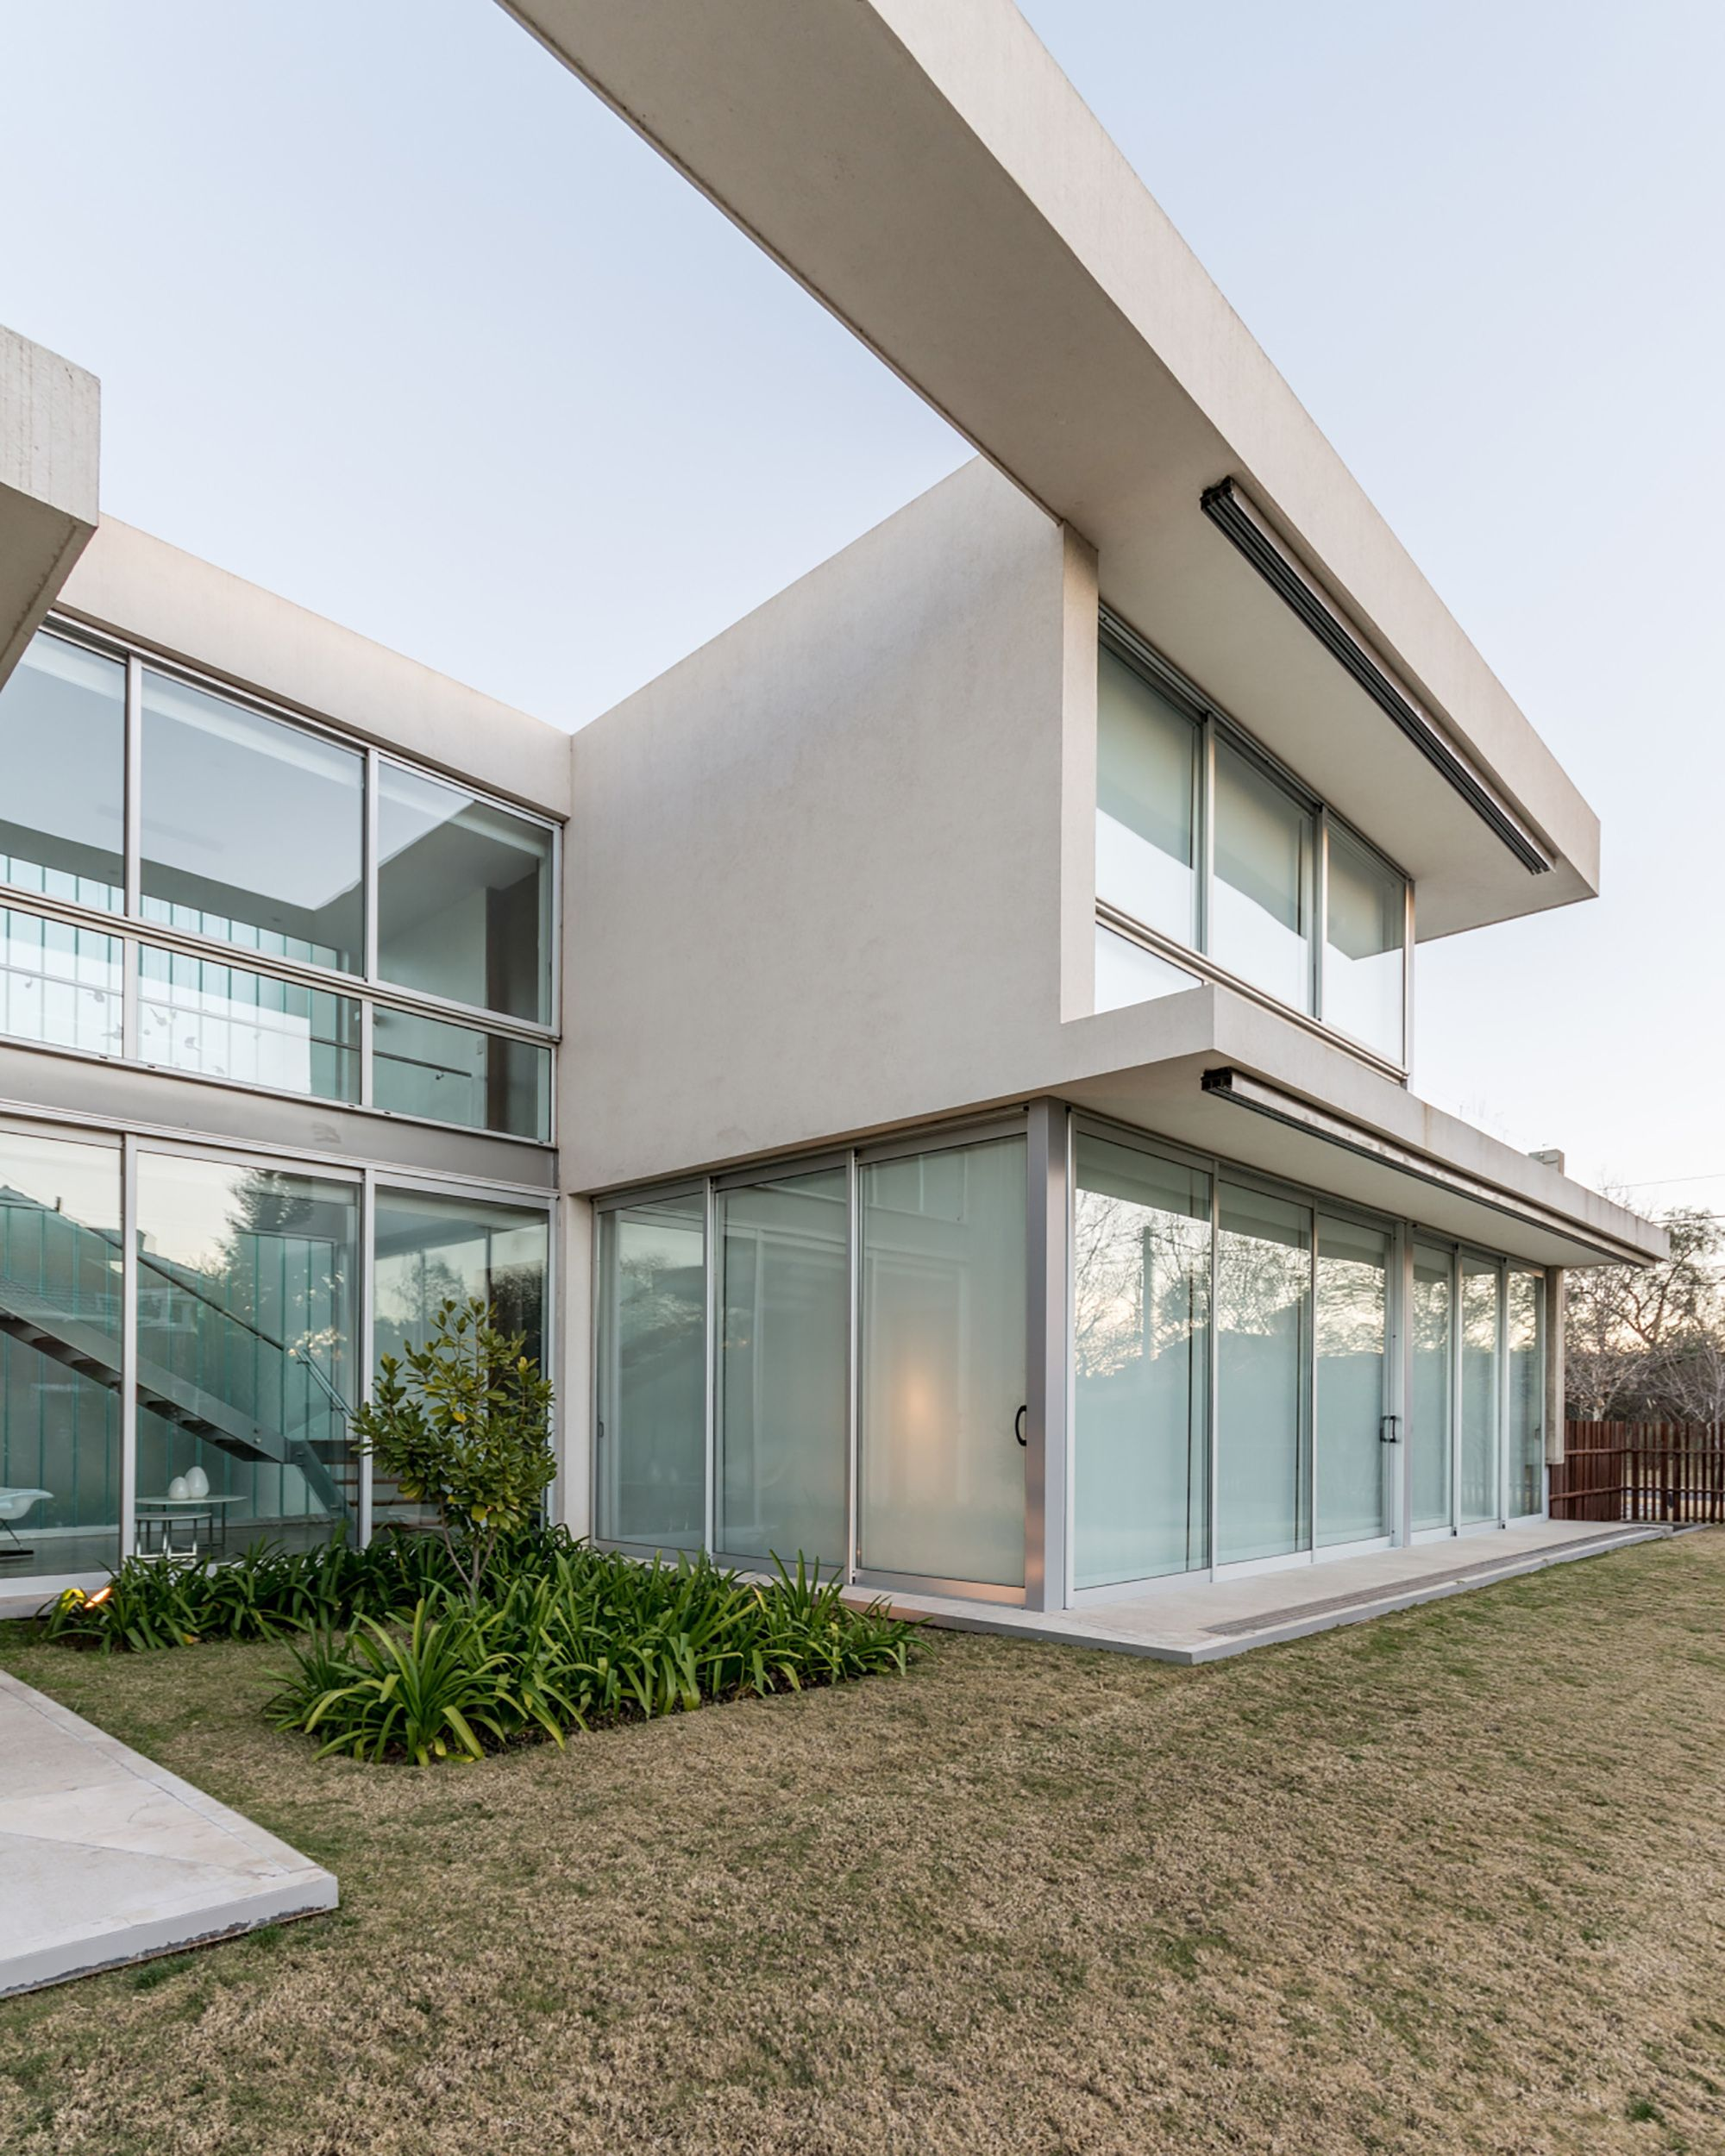 Designed by FWAP Arquitectos and built in Cordoba